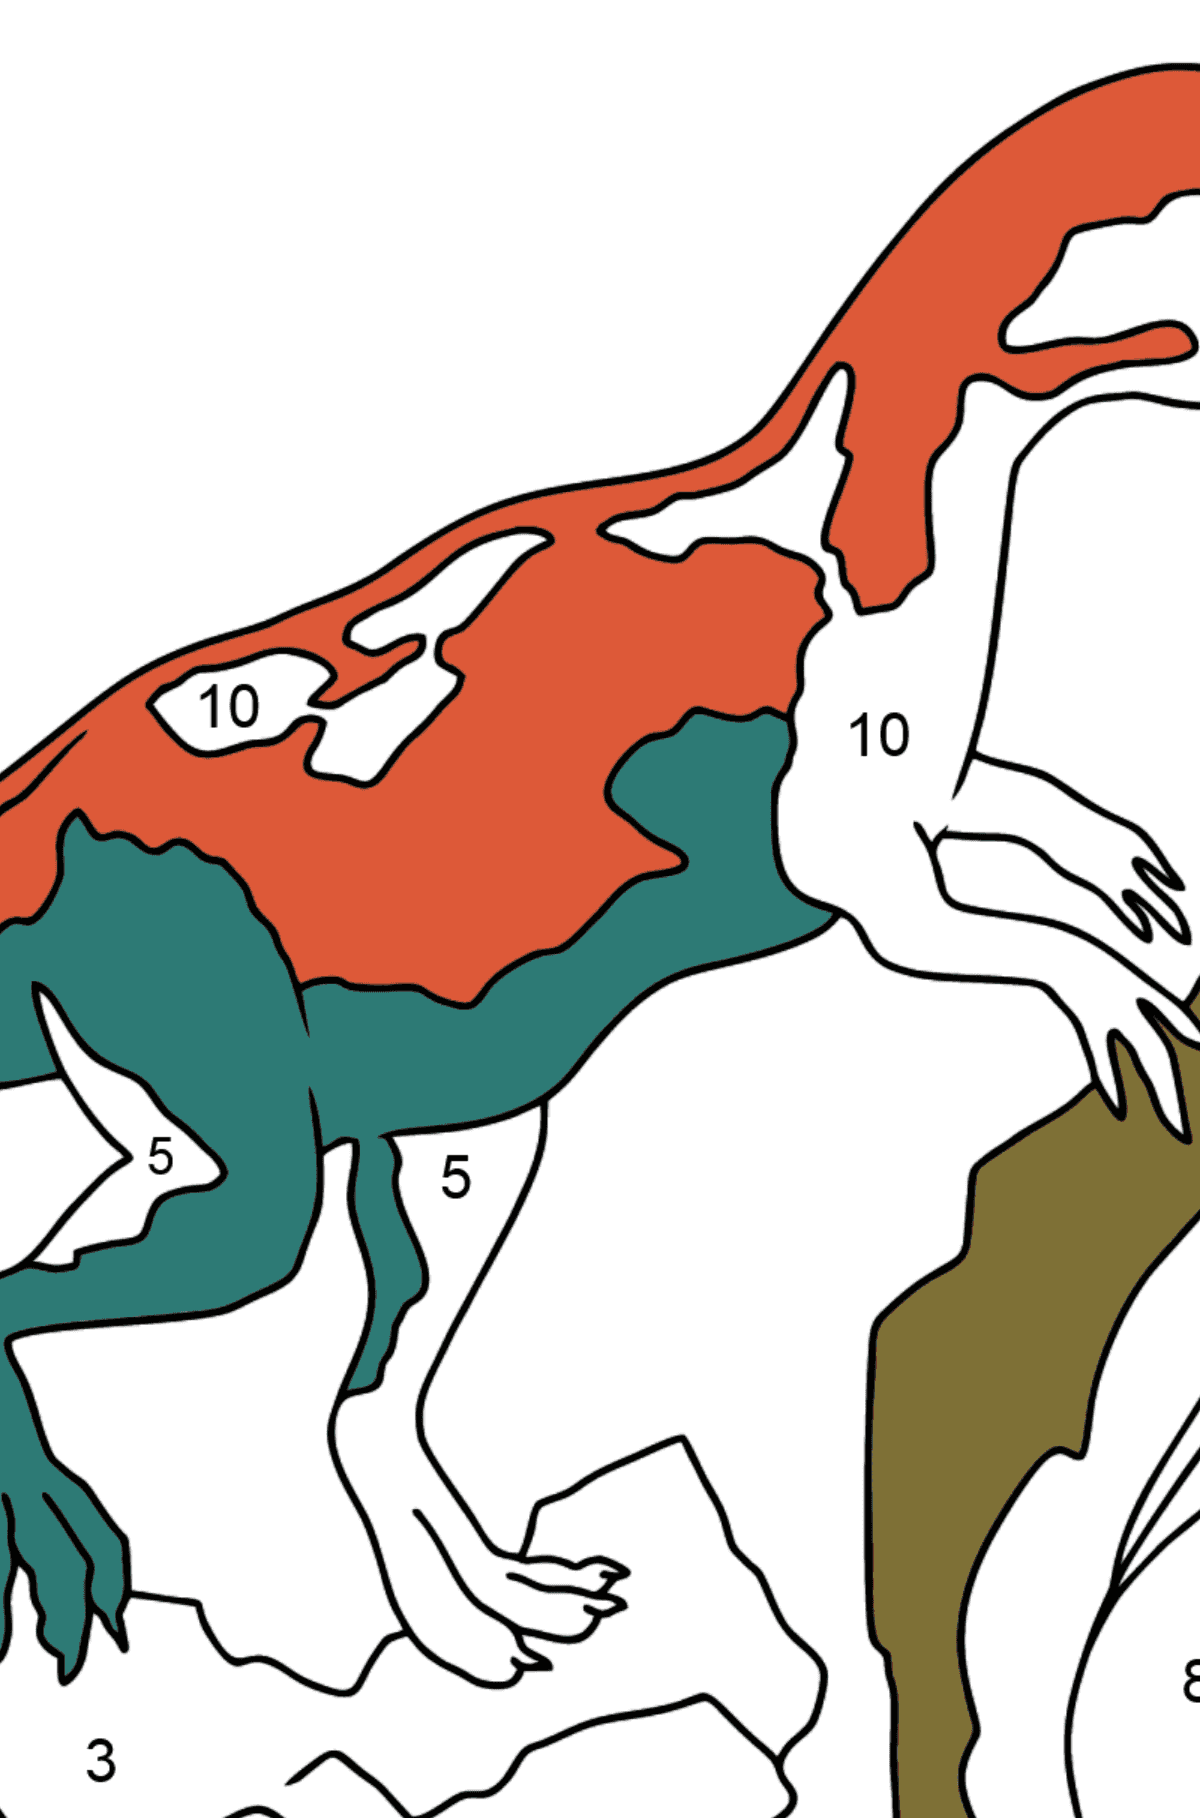 Coloring Page - Allosaurus - Jurassic Dinosaur - Coloring by Numbers for Kids